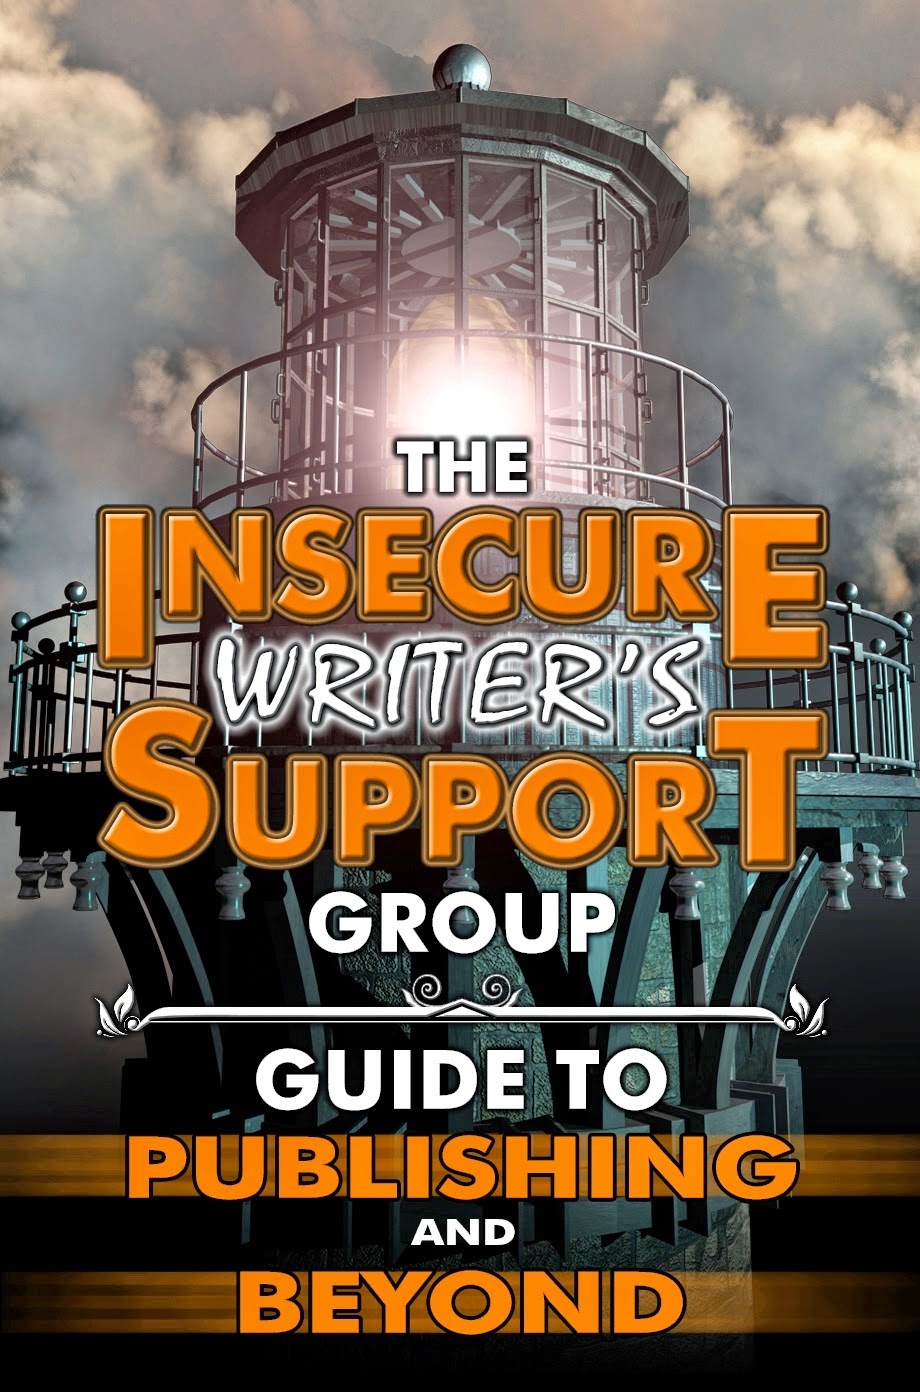 http://www.insecurewriterssupportgroup.com/2014/12/the-insecure-writers-support-group.html